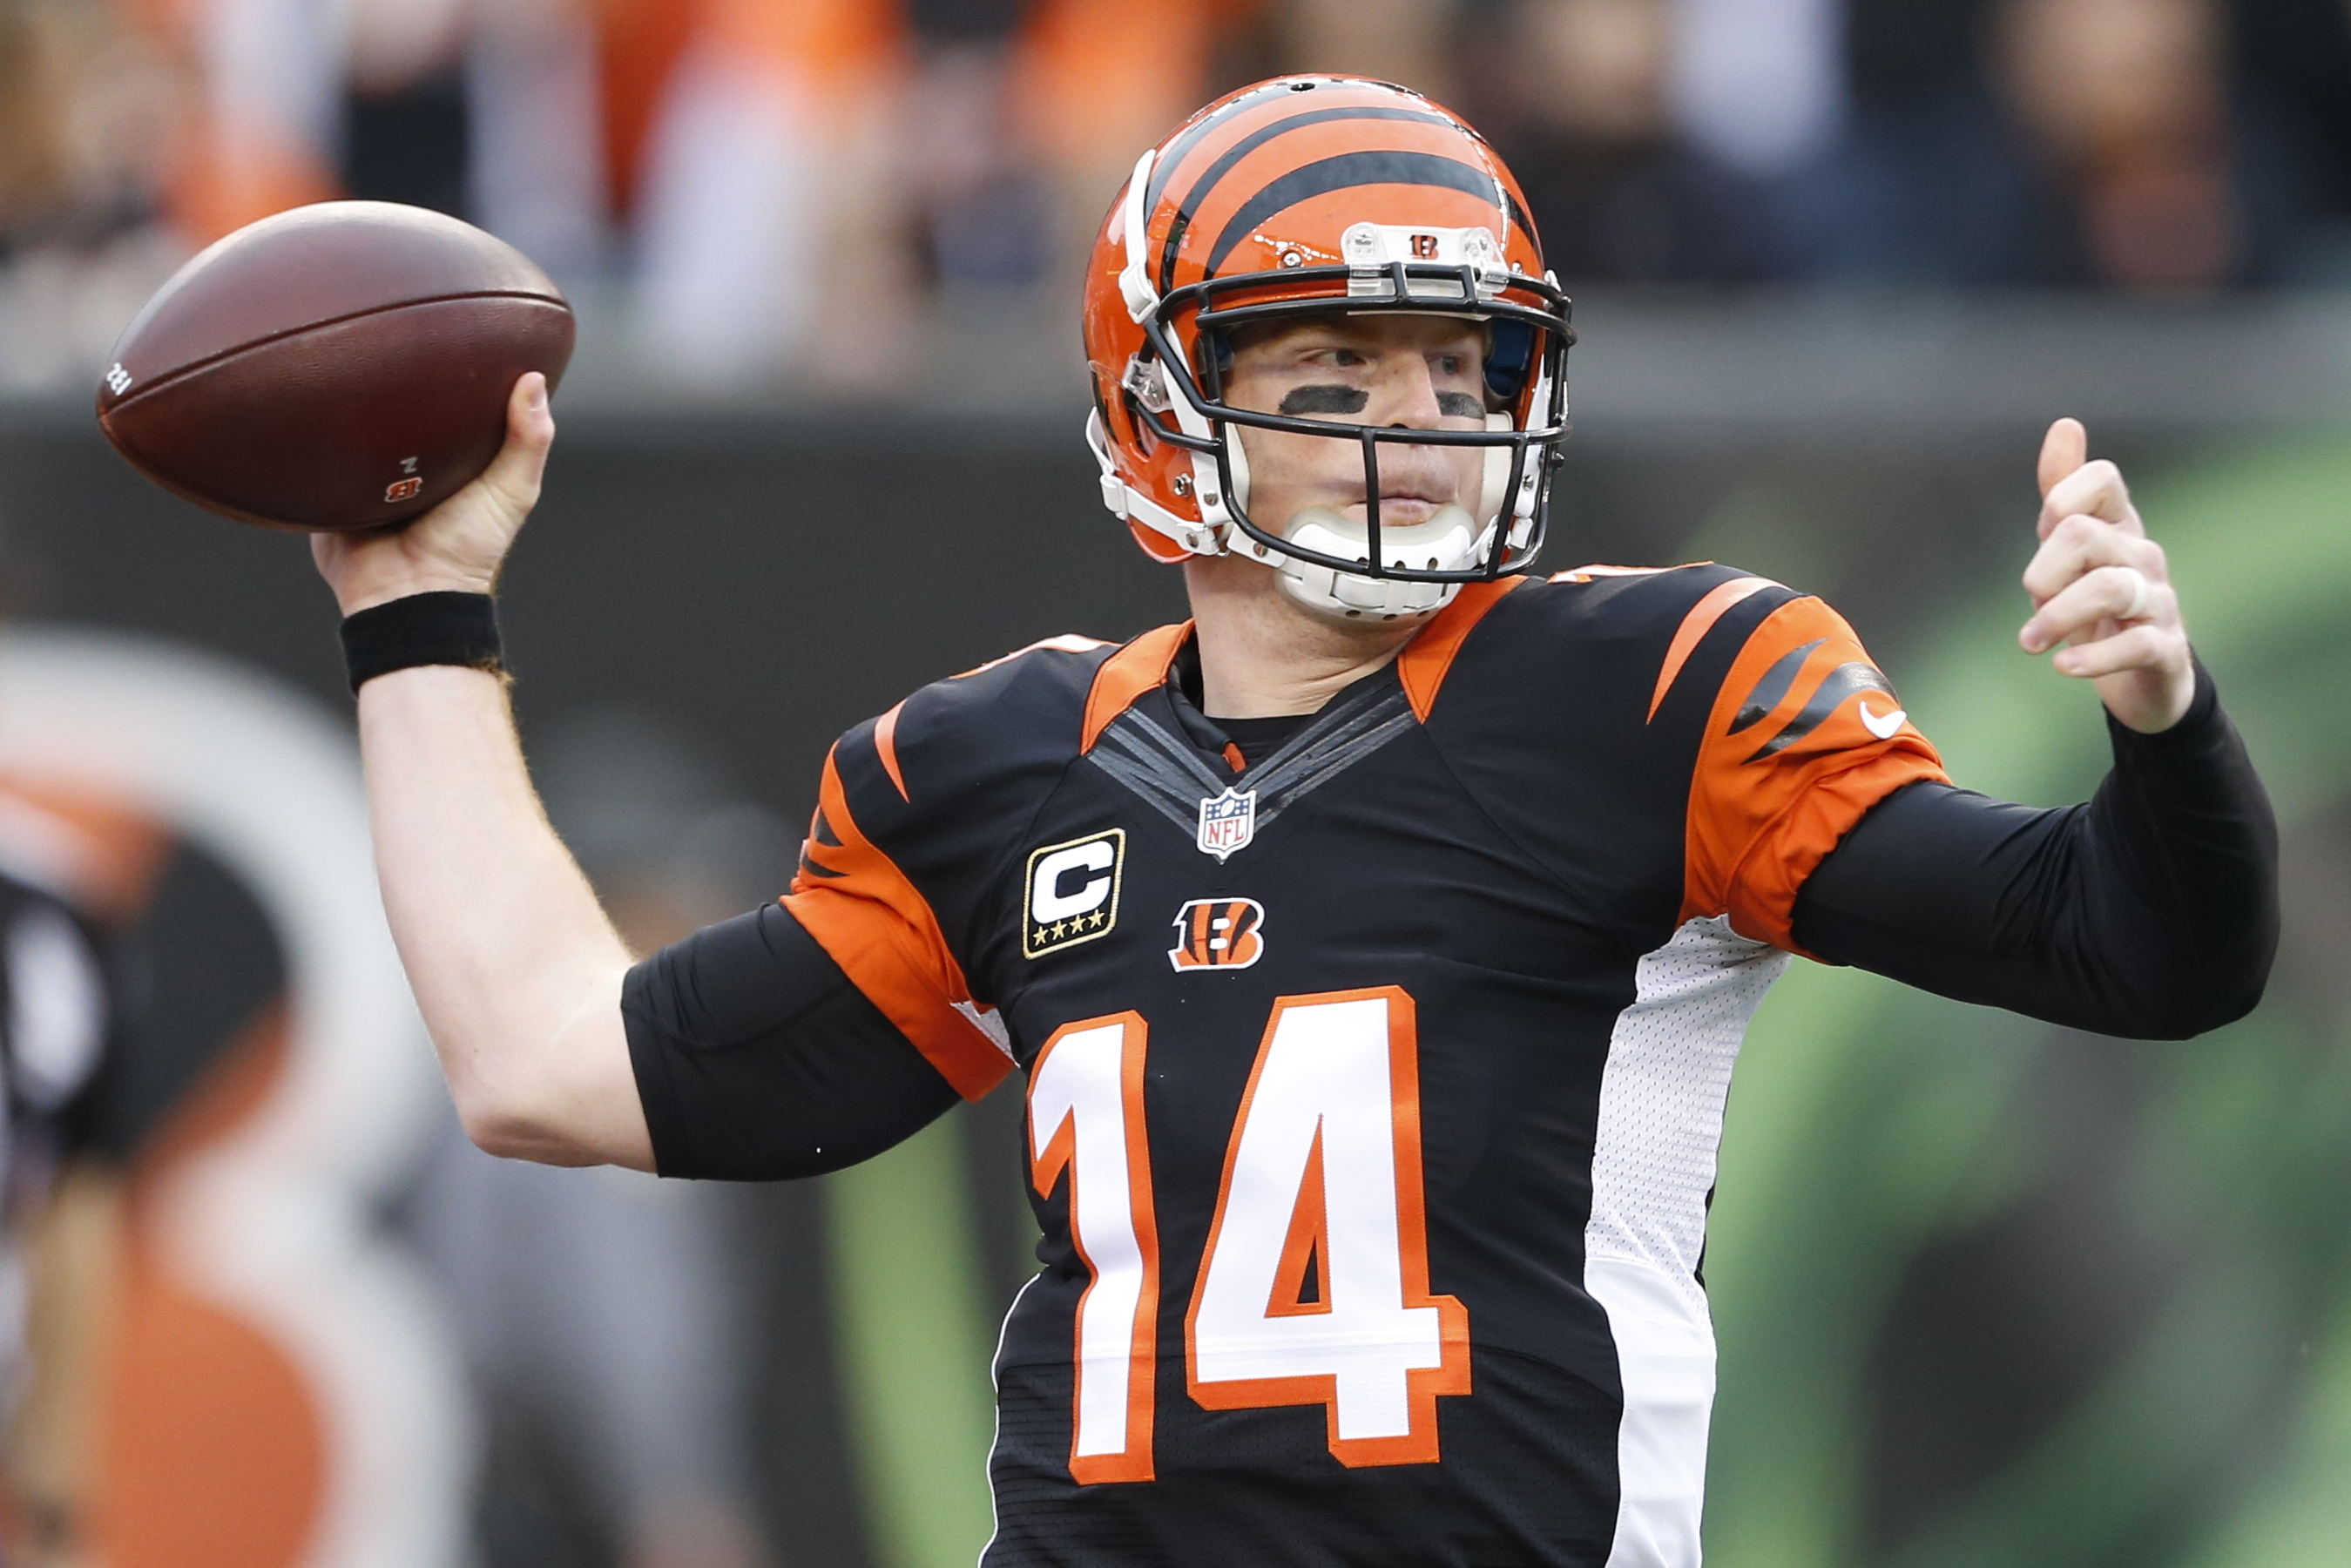 FILE - In this Dec. 13, 2015 file photo, Cincinnati Bengals quarterback Andy Dalton throws in the first half of an NFL football game against the Pittsburgh Steelers in Cincinnati. Dalton got his breakthrough season last year, his fifth in the NFL. He comp